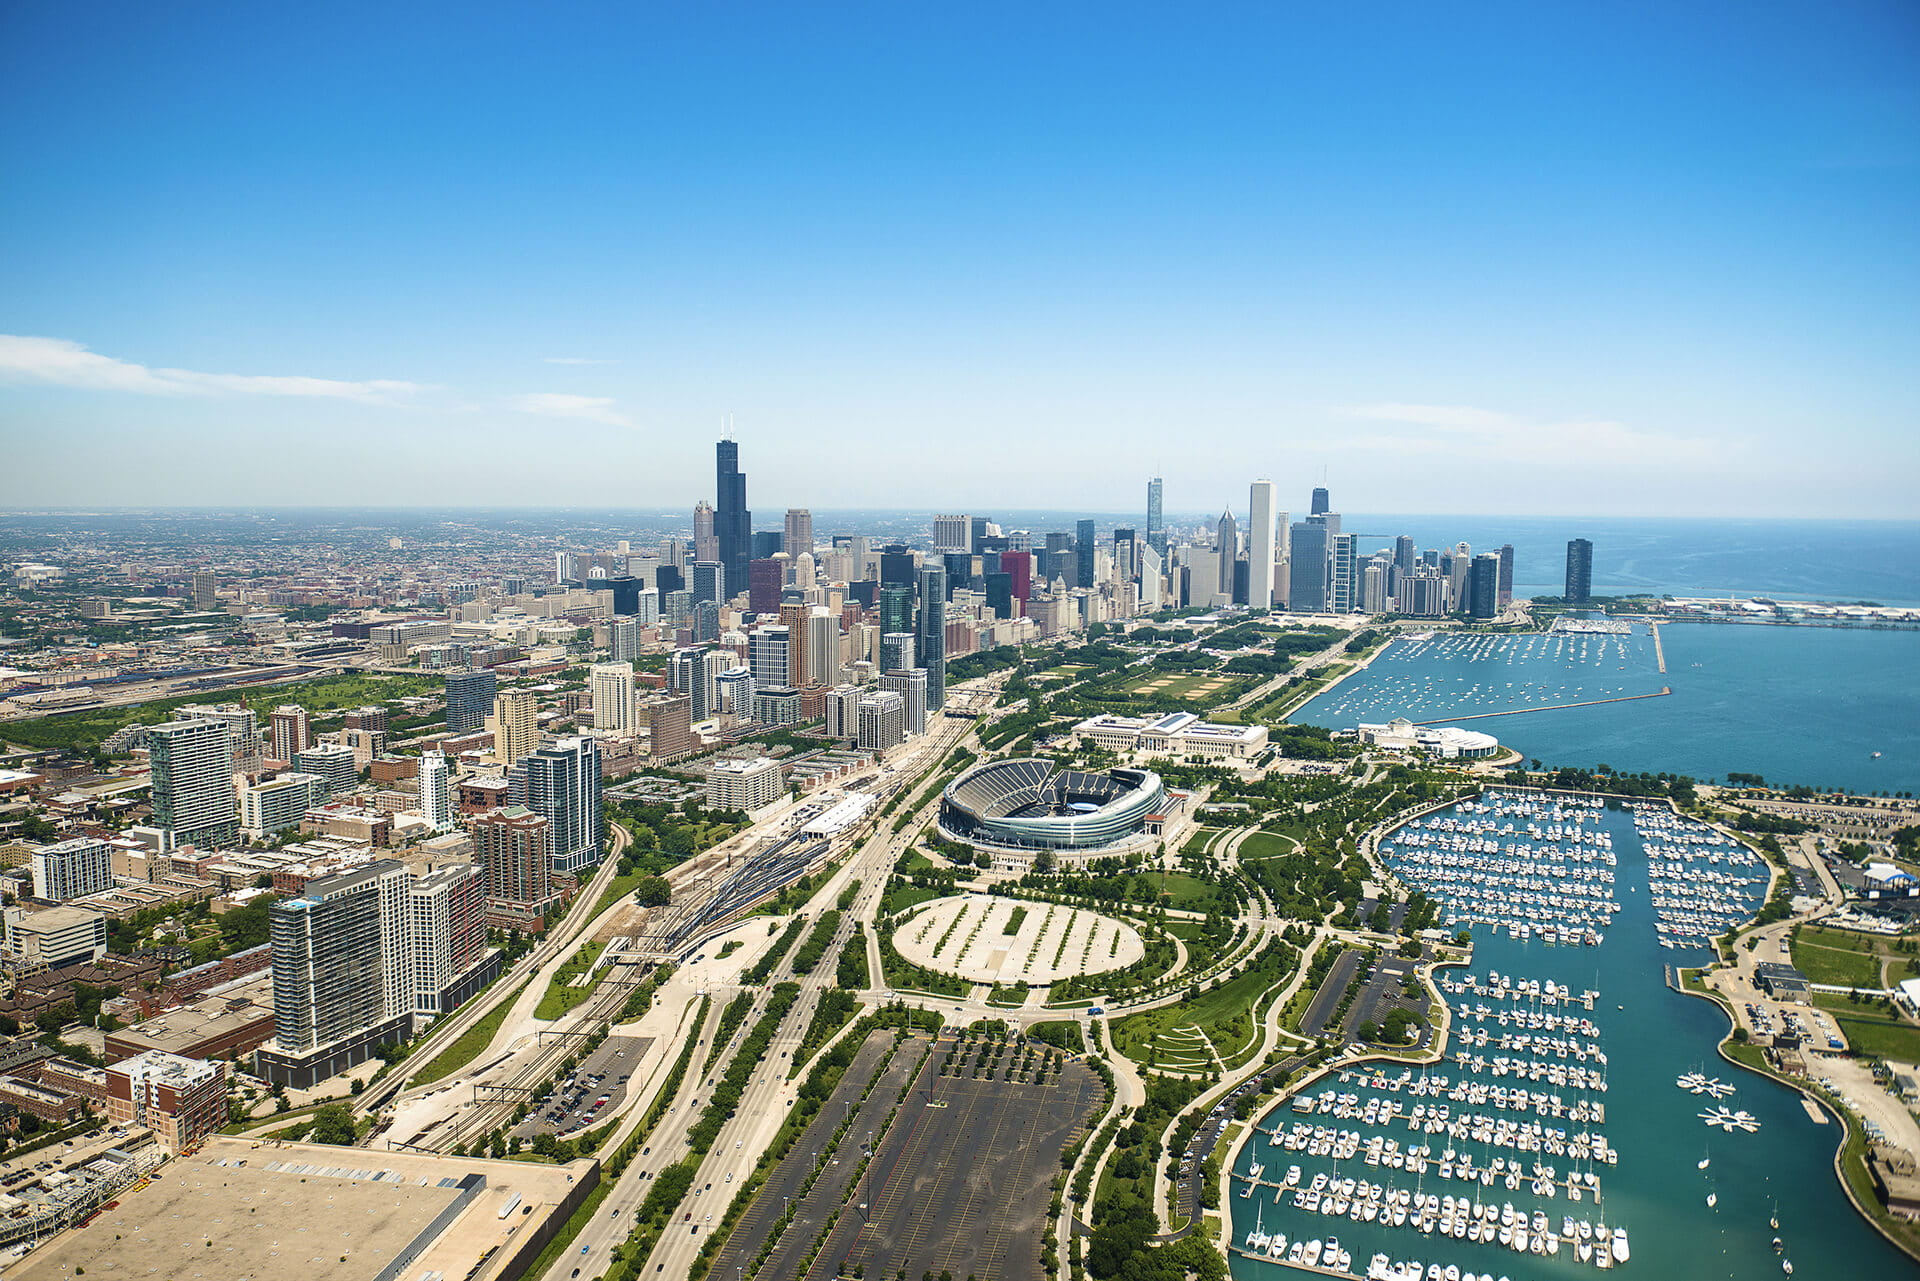 Bird's eye view of Chicago Skyline